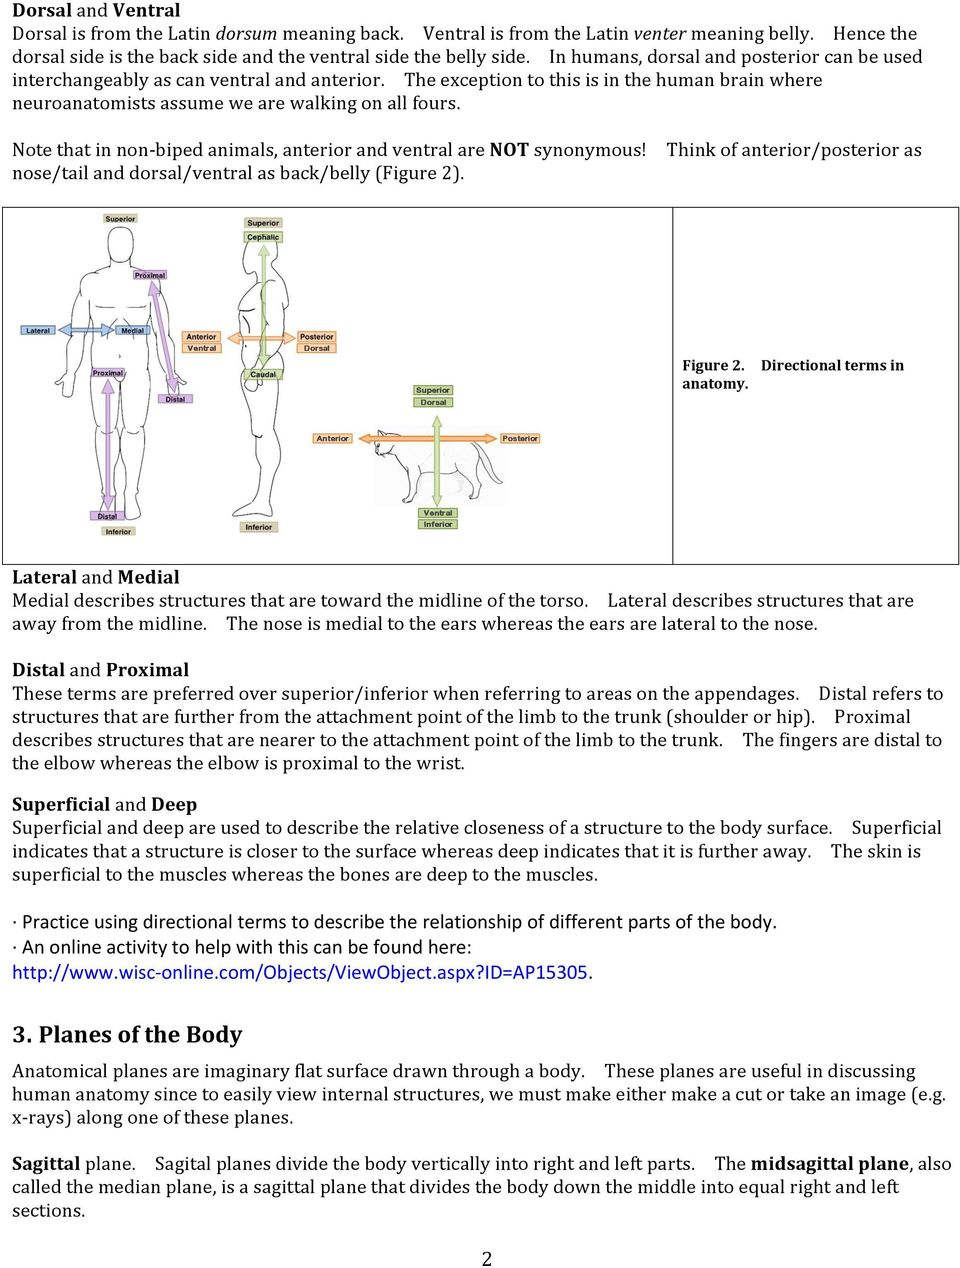 worksheet Directional Terminology Worksheet laboratory 1 anatomical planes and regions pdf note that in non biped animals anterior ventral are not synonymous nose